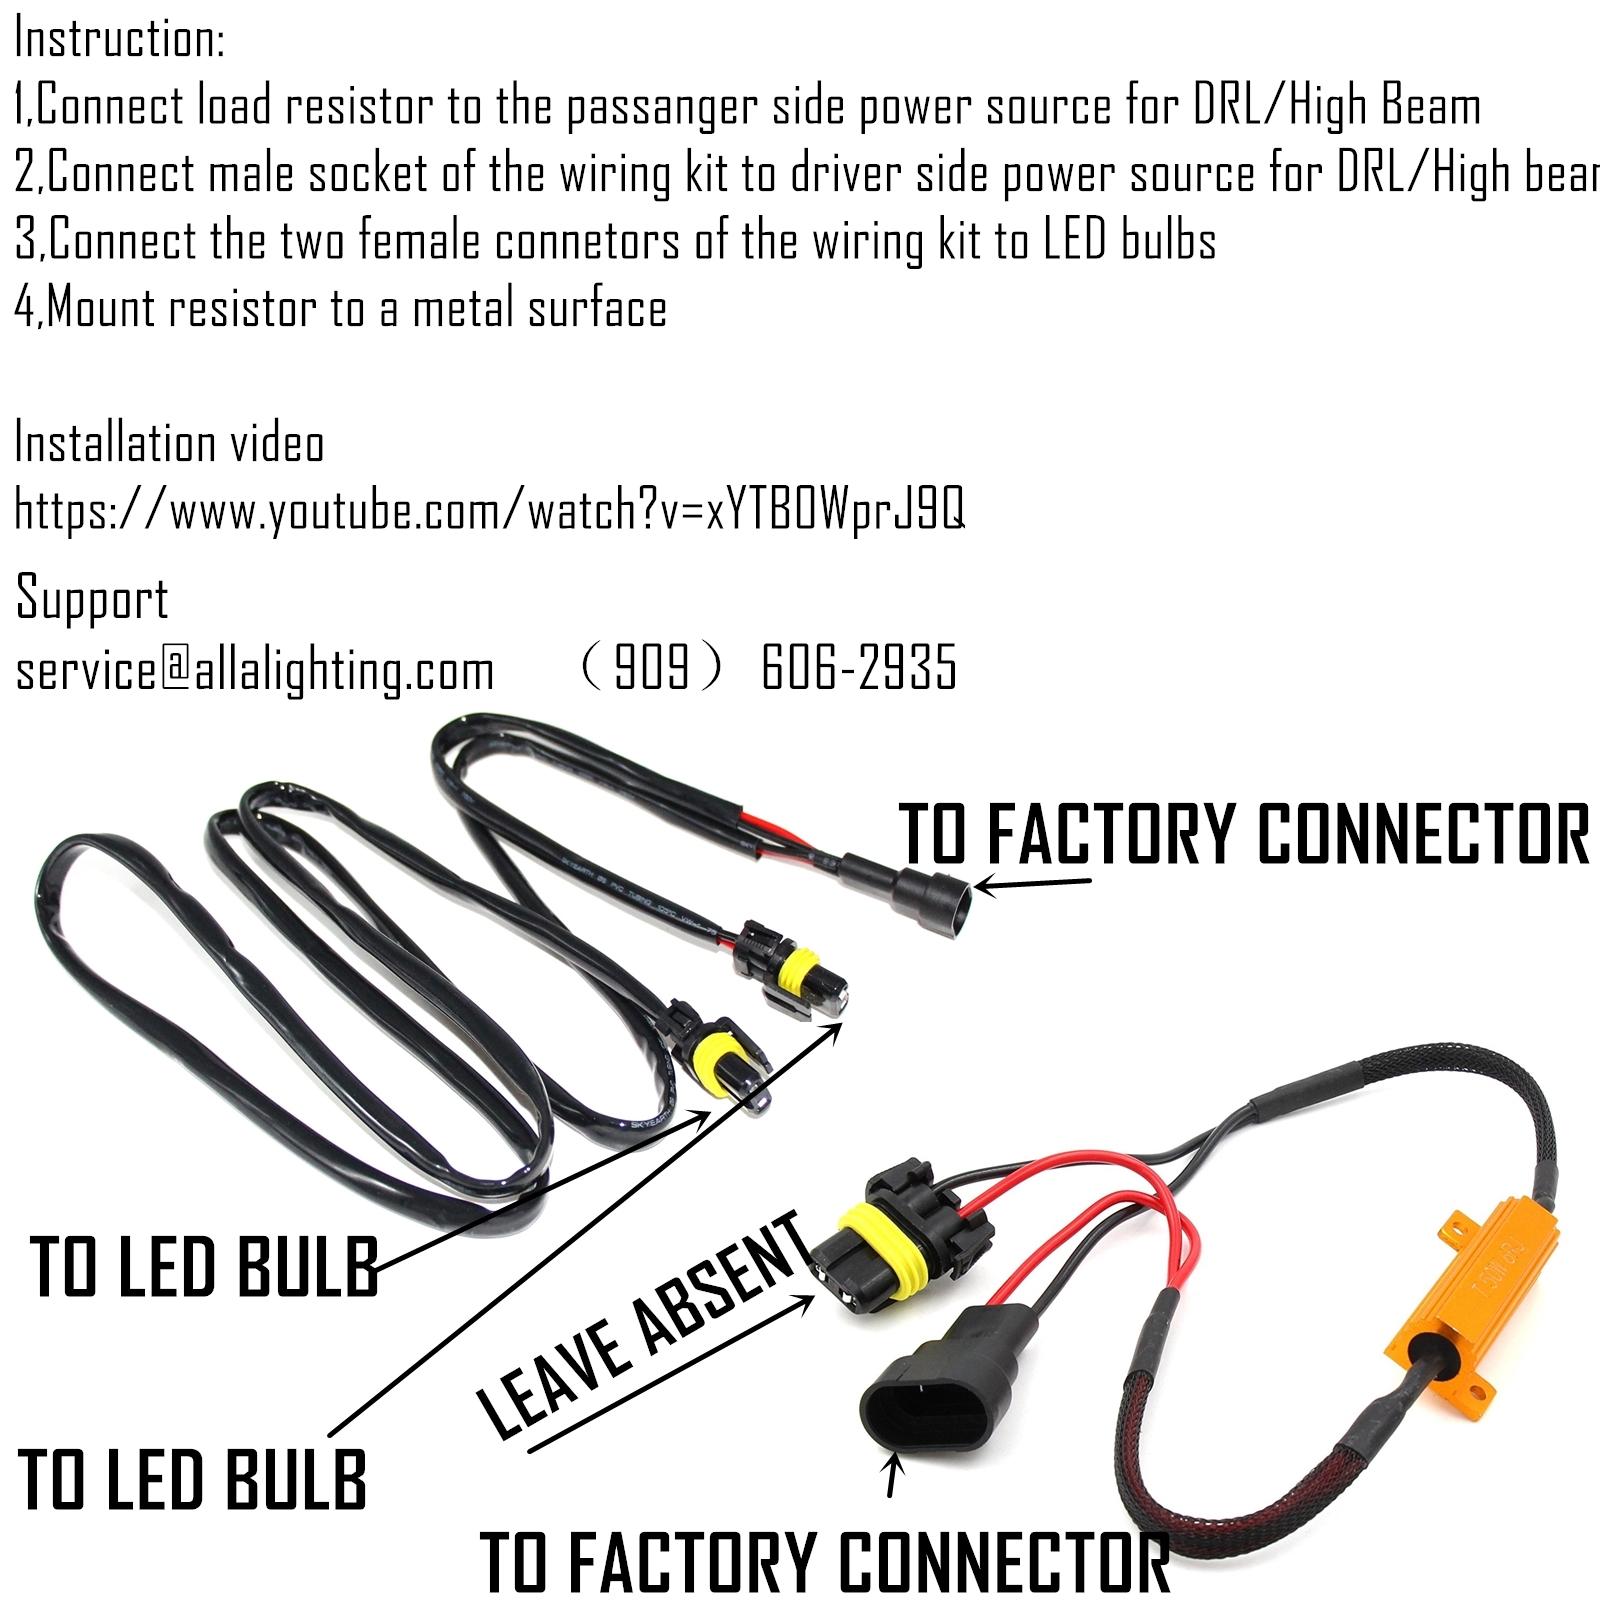 How to Install HB3 9005 LED DRL Anti-flickering + Resistors